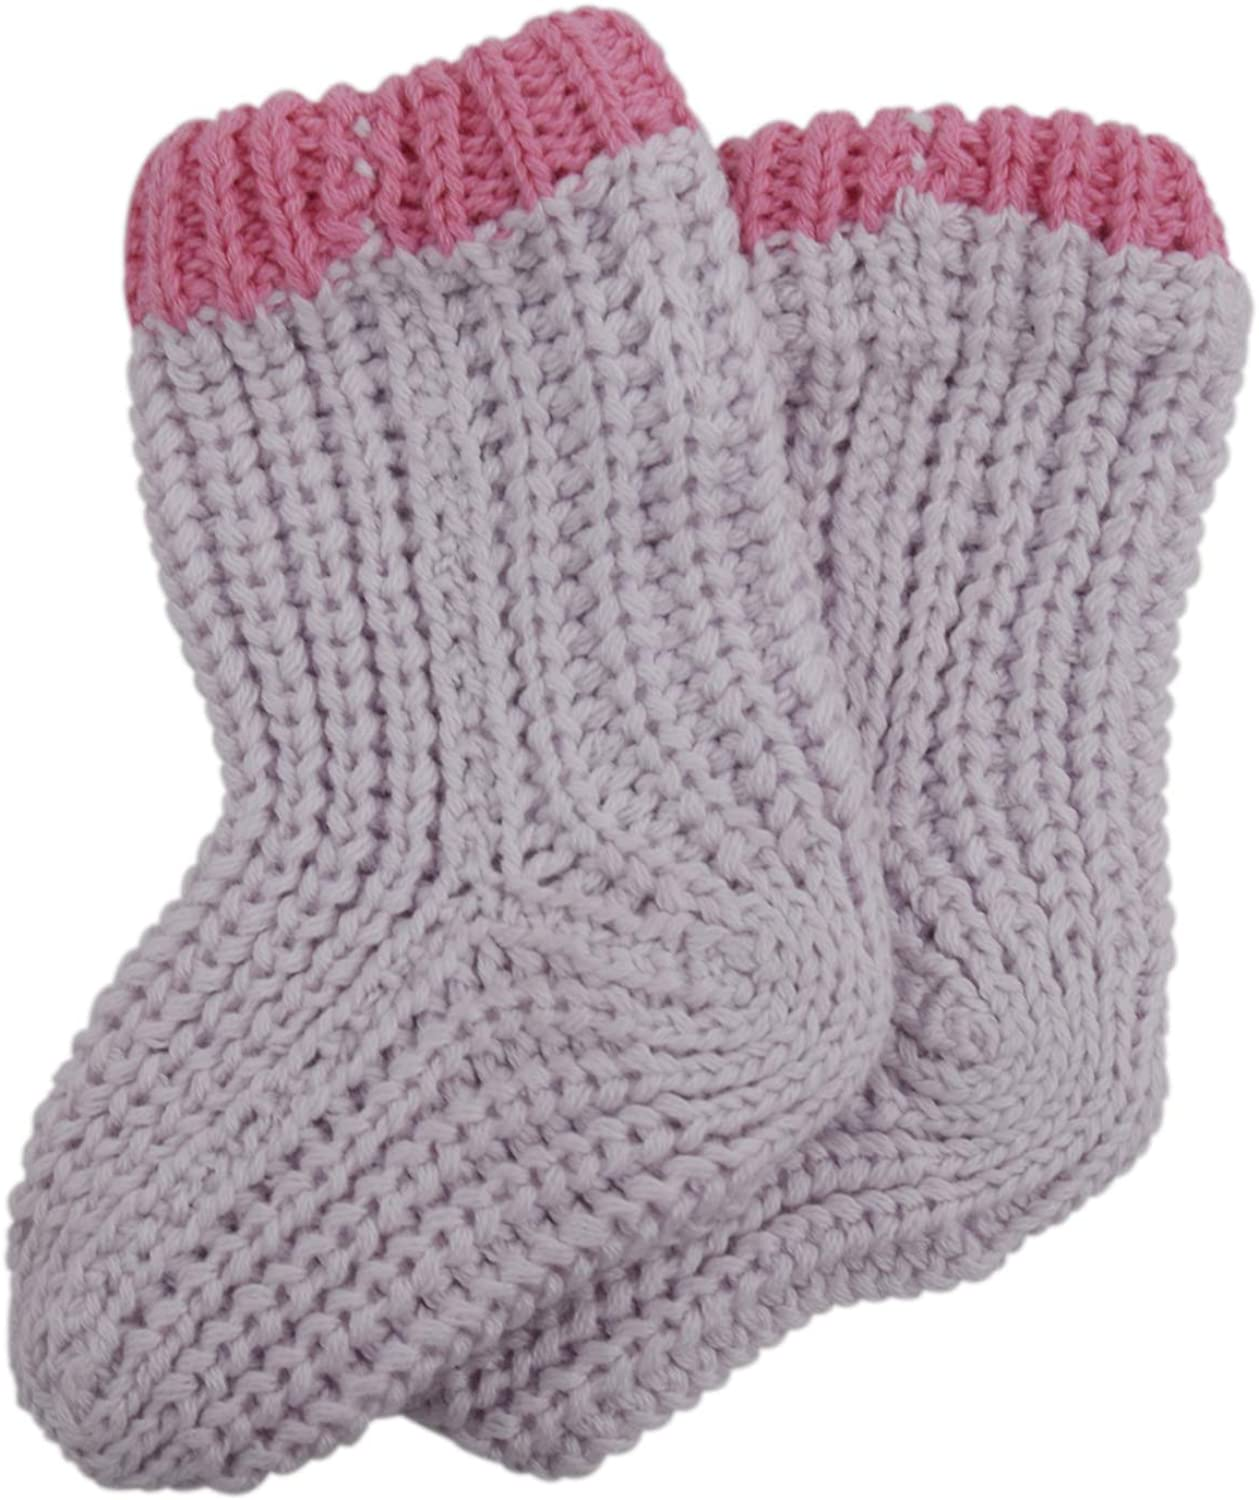 Gireshome-Cozy Cotton Knitted Baby Socks-3.54